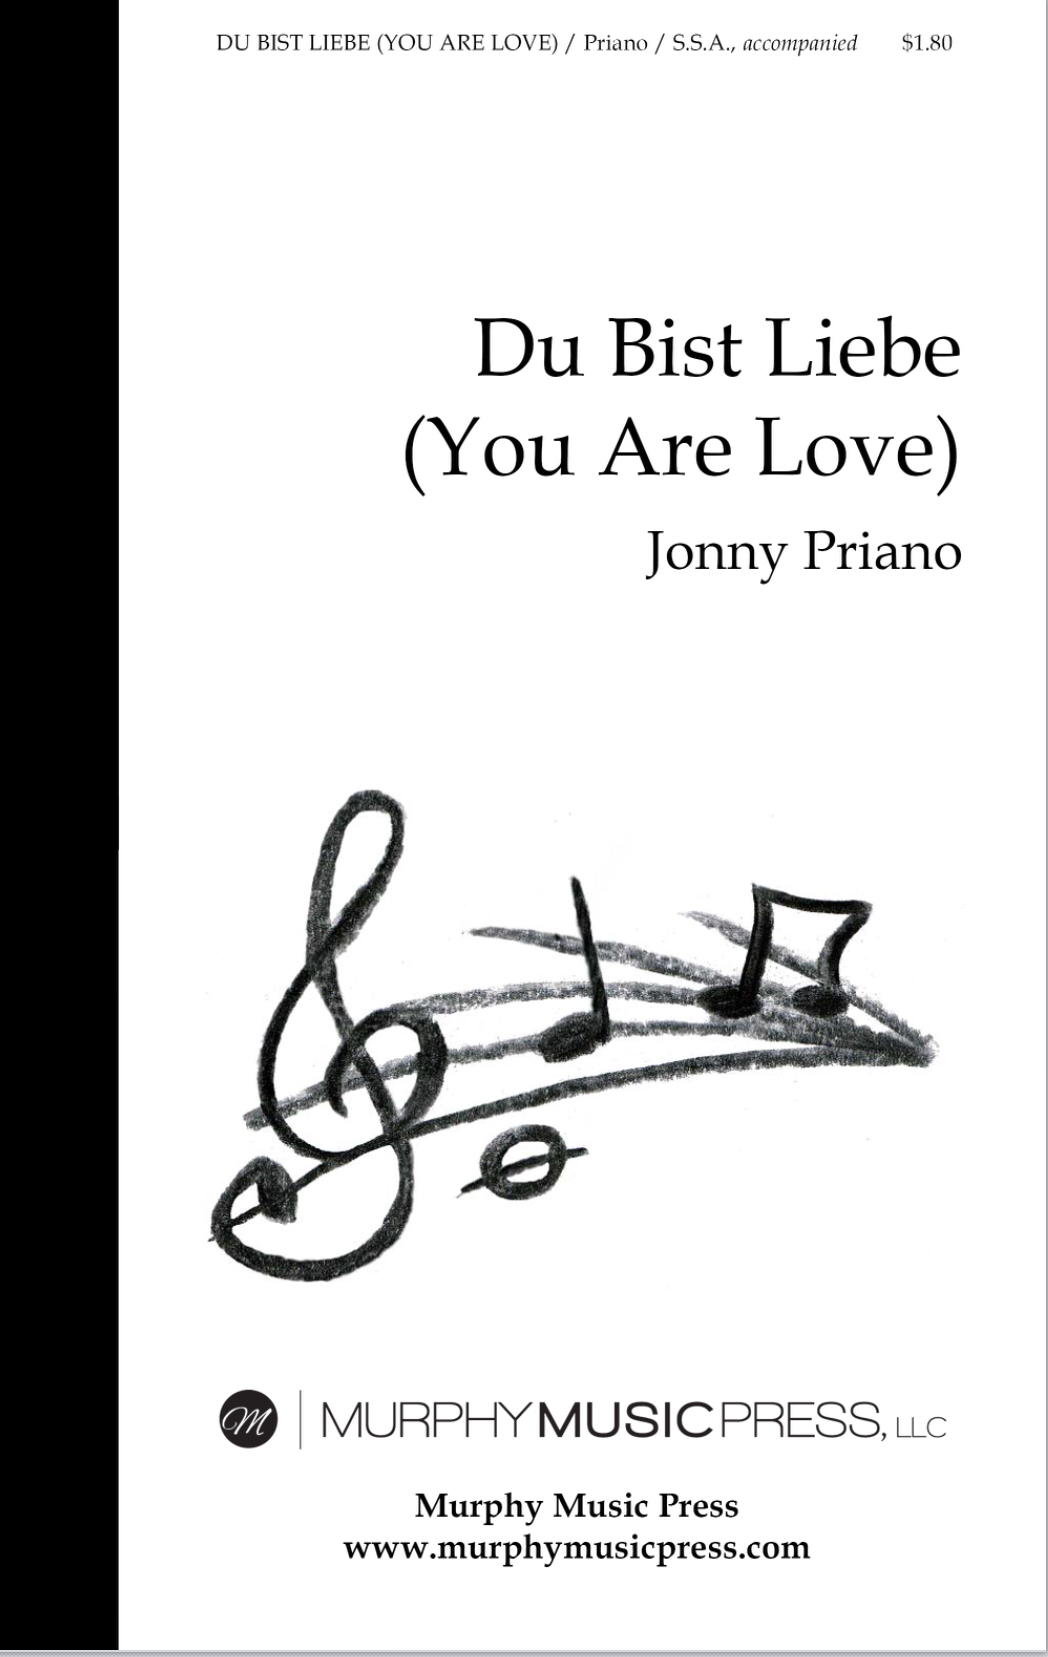 Du Bist Liebe (SSA Accompanied) by Jonny Priano